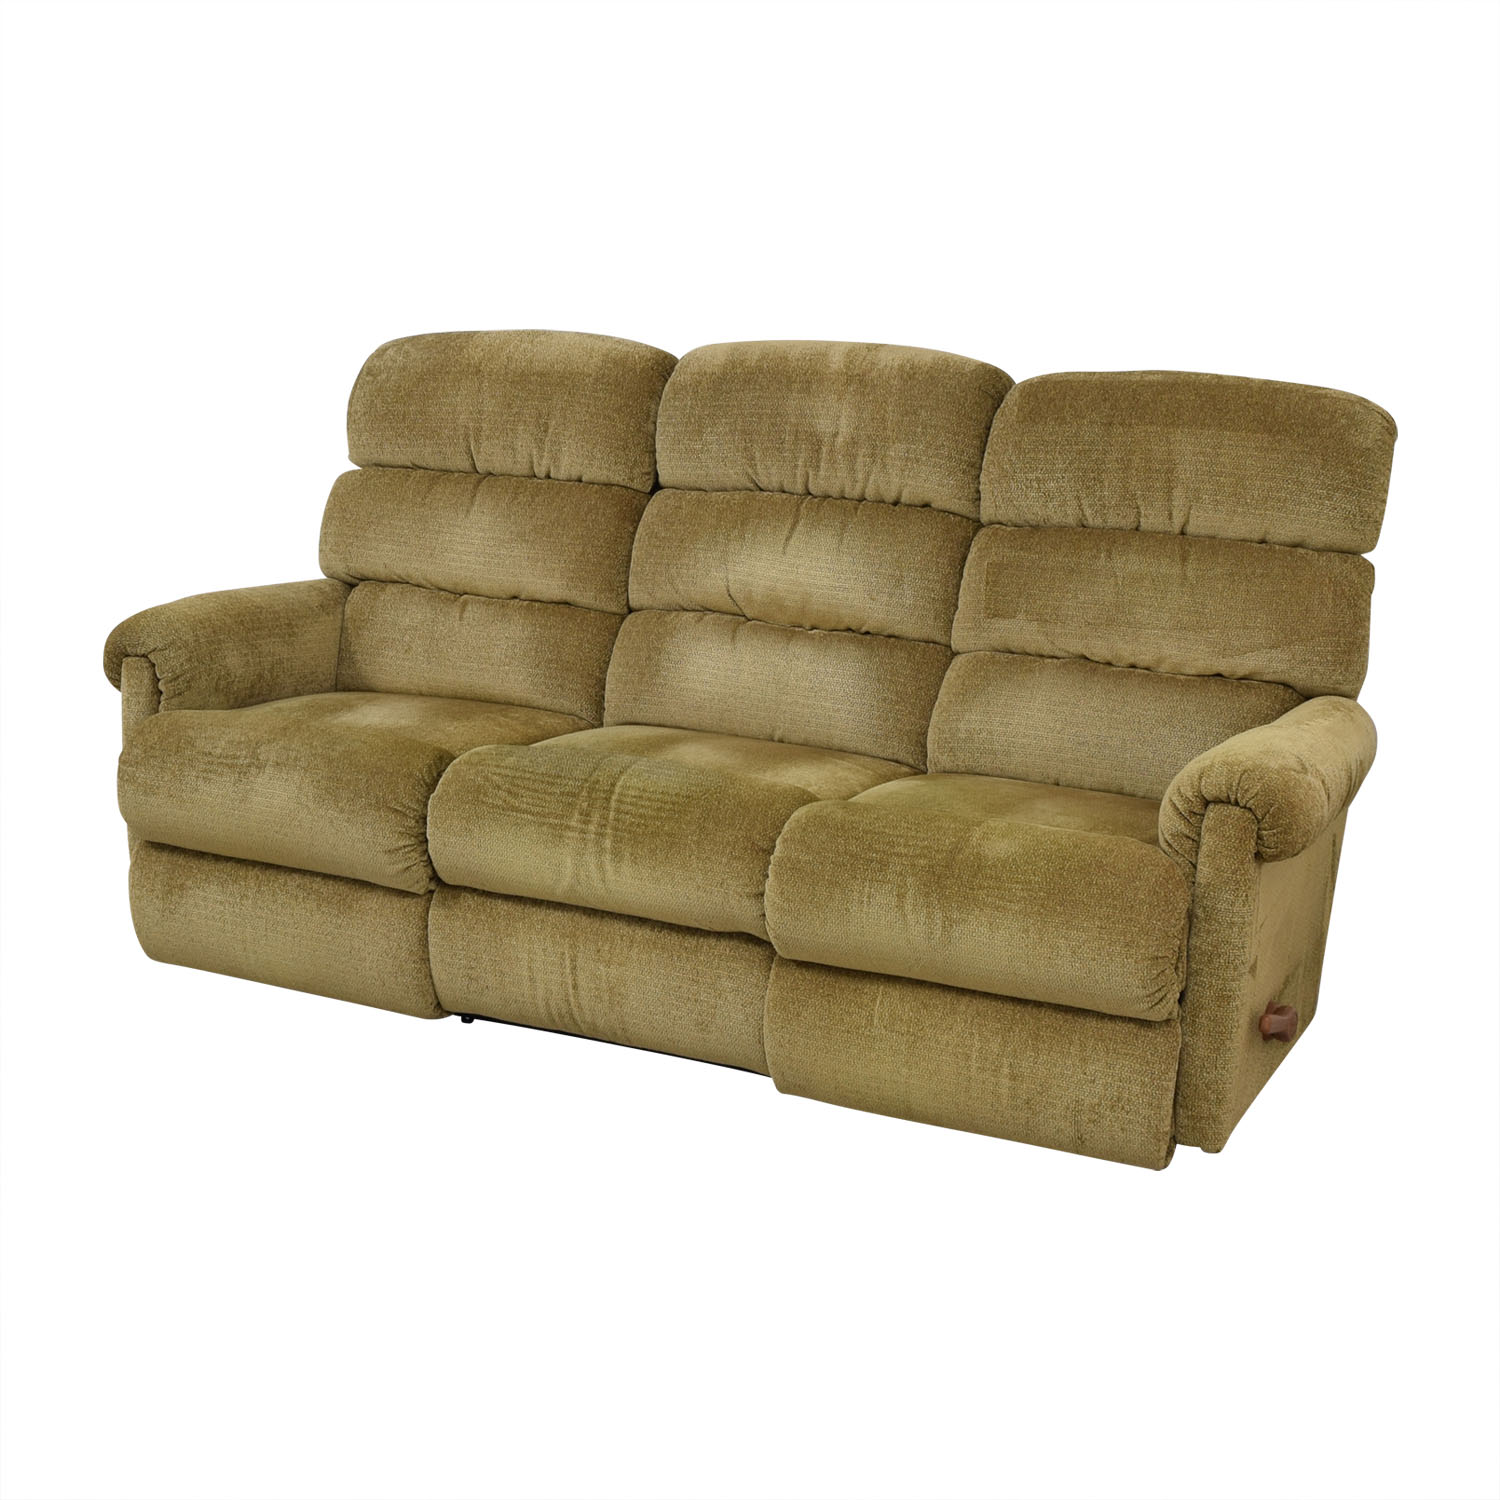 buy La-Z-Boy Tan Reclining Three-Cushion Sofa La-Z-Boy